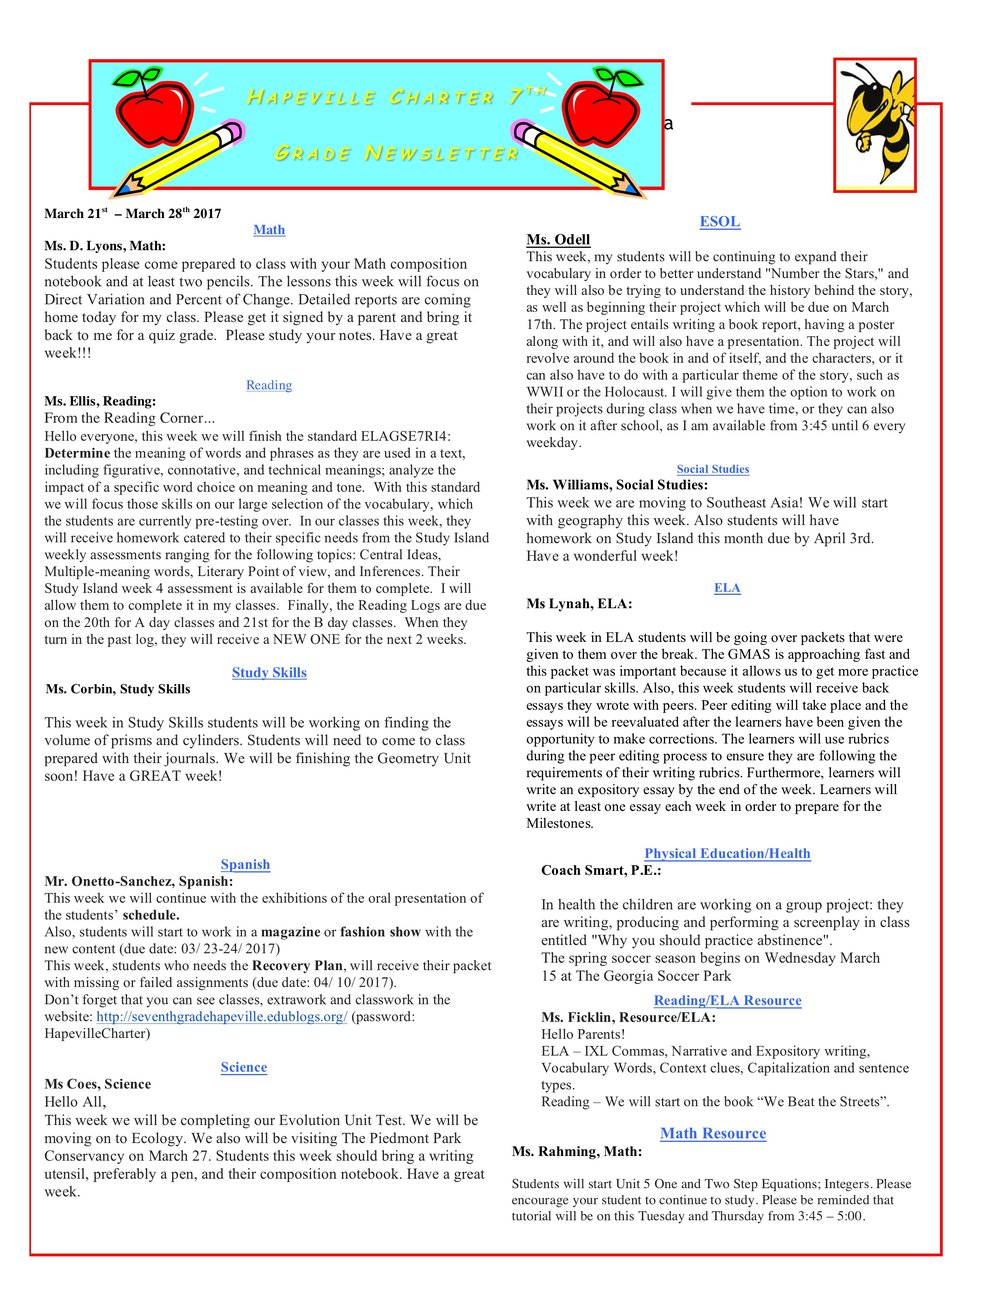 Newsletter Image7th Grade Newsletter 3-21-2017 .jpeg